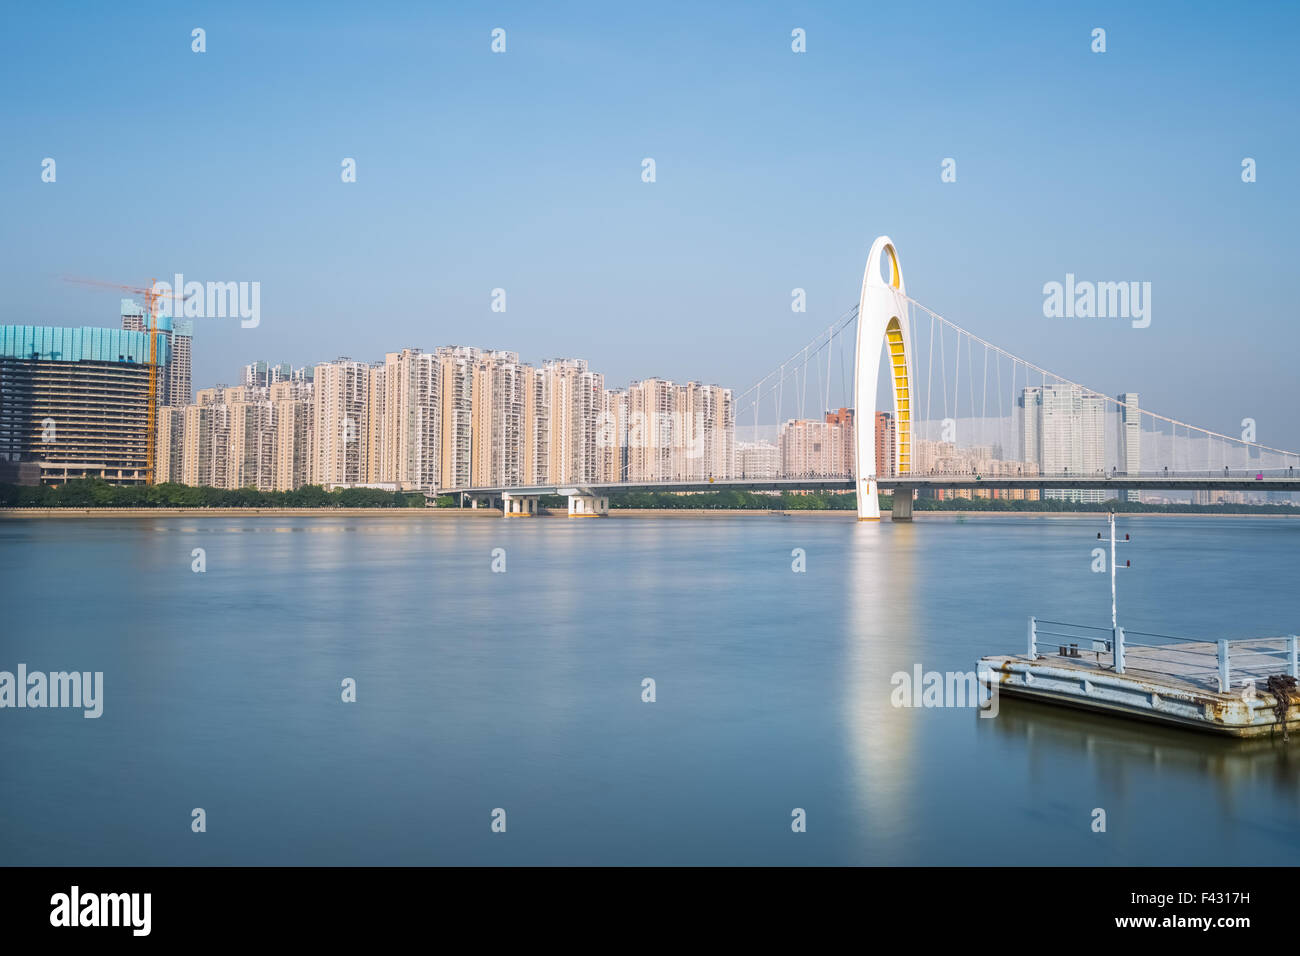 the pearl river scenery - Stock Image